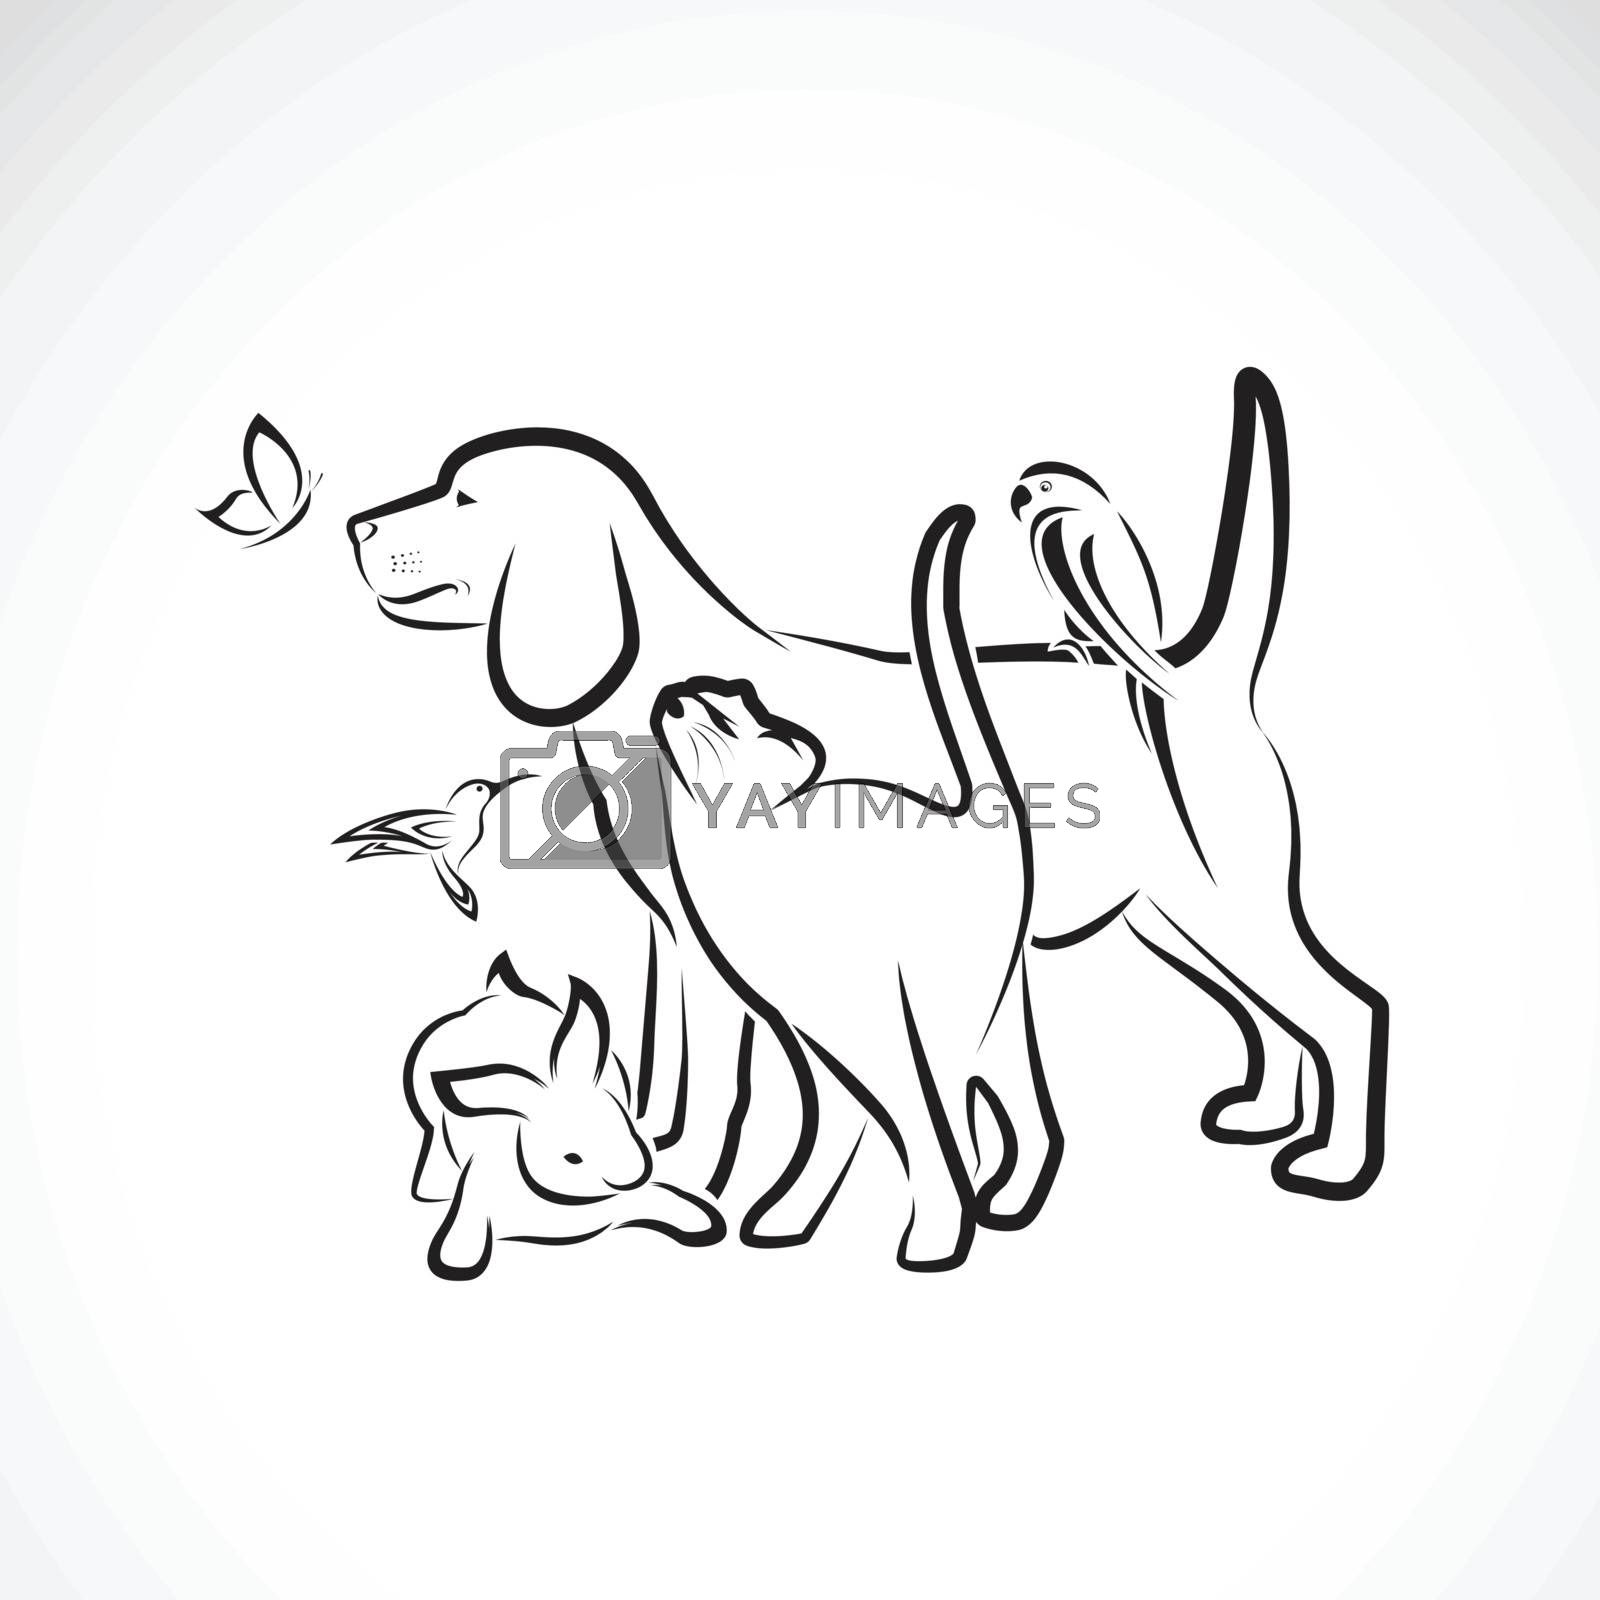 Vector group of pets - Dog, Cat, Parrot, Rabbit, Butterfly, Hummingbird, isolated on white background. Pet. Animals. Easy editable layered vector illustration. Pet group.